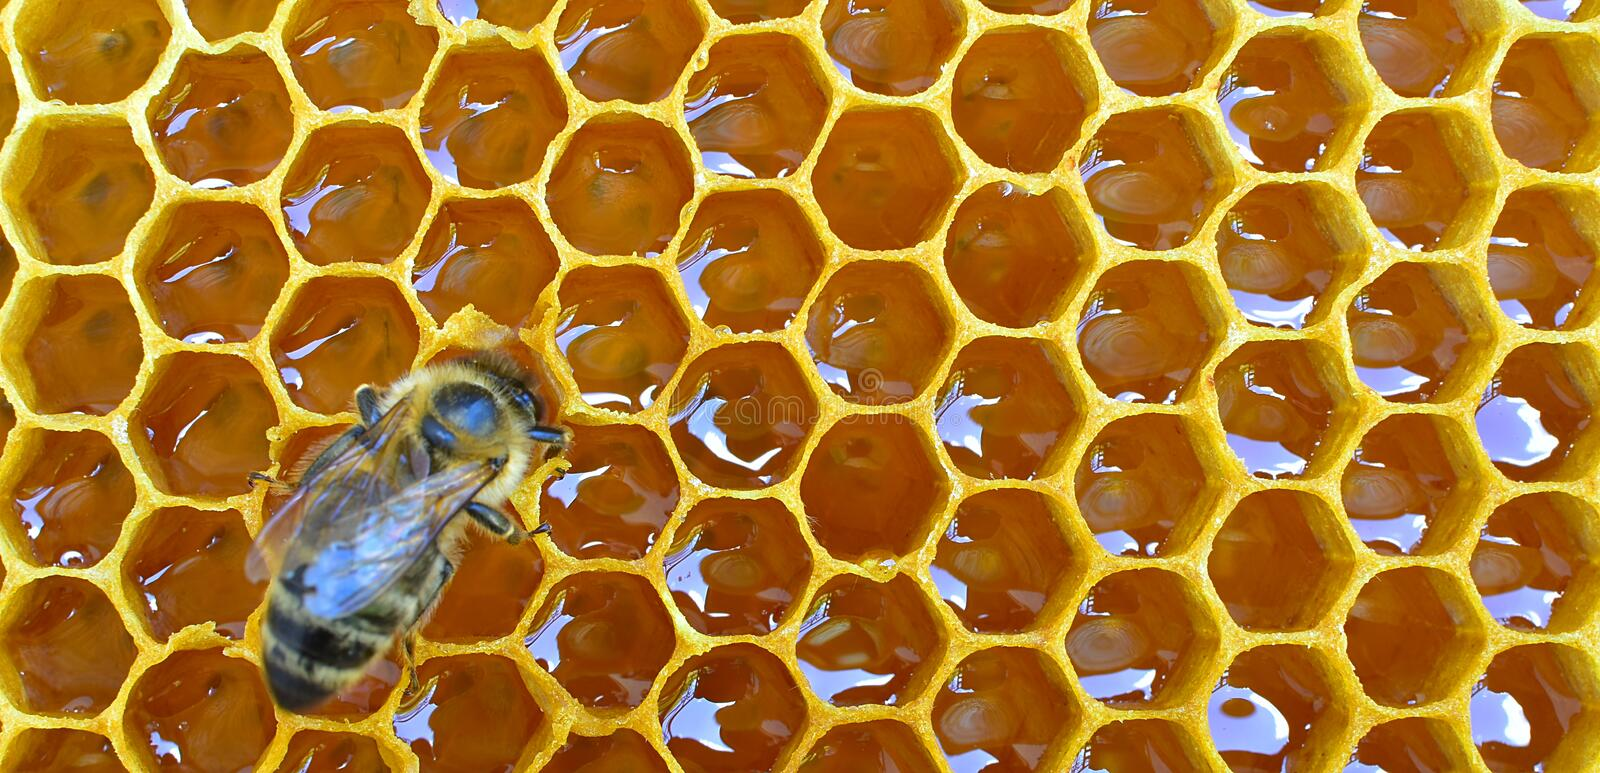 Download Comb honey with bee stock photo. Image of honey, full - 94398782